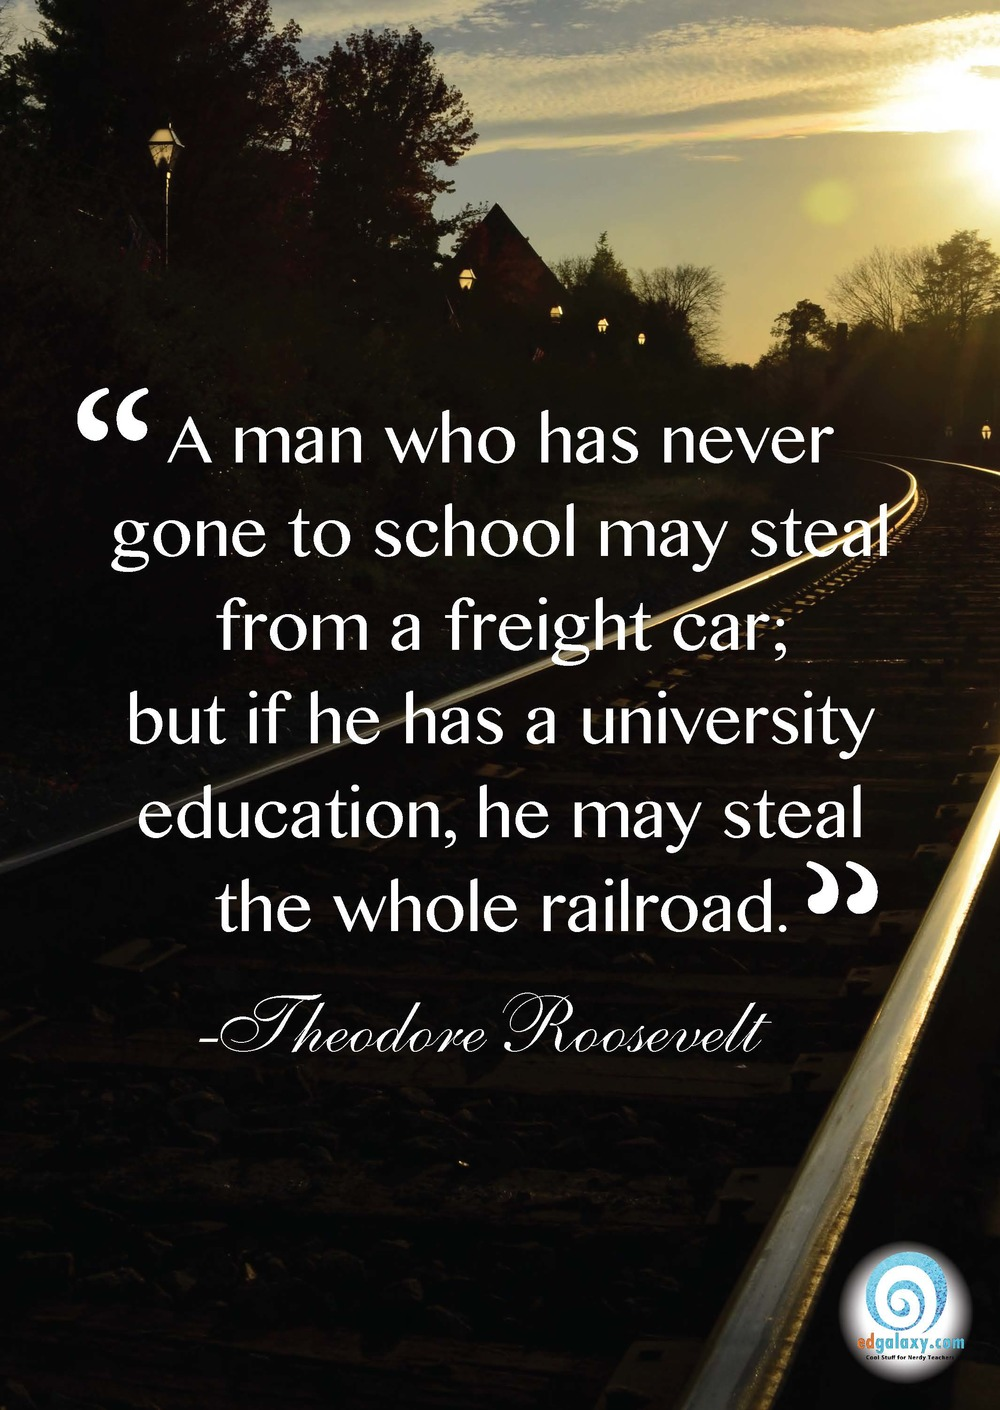 Education And Life Quotes Brilliant Education Quotes  Famous Quotes For Teachers And Students